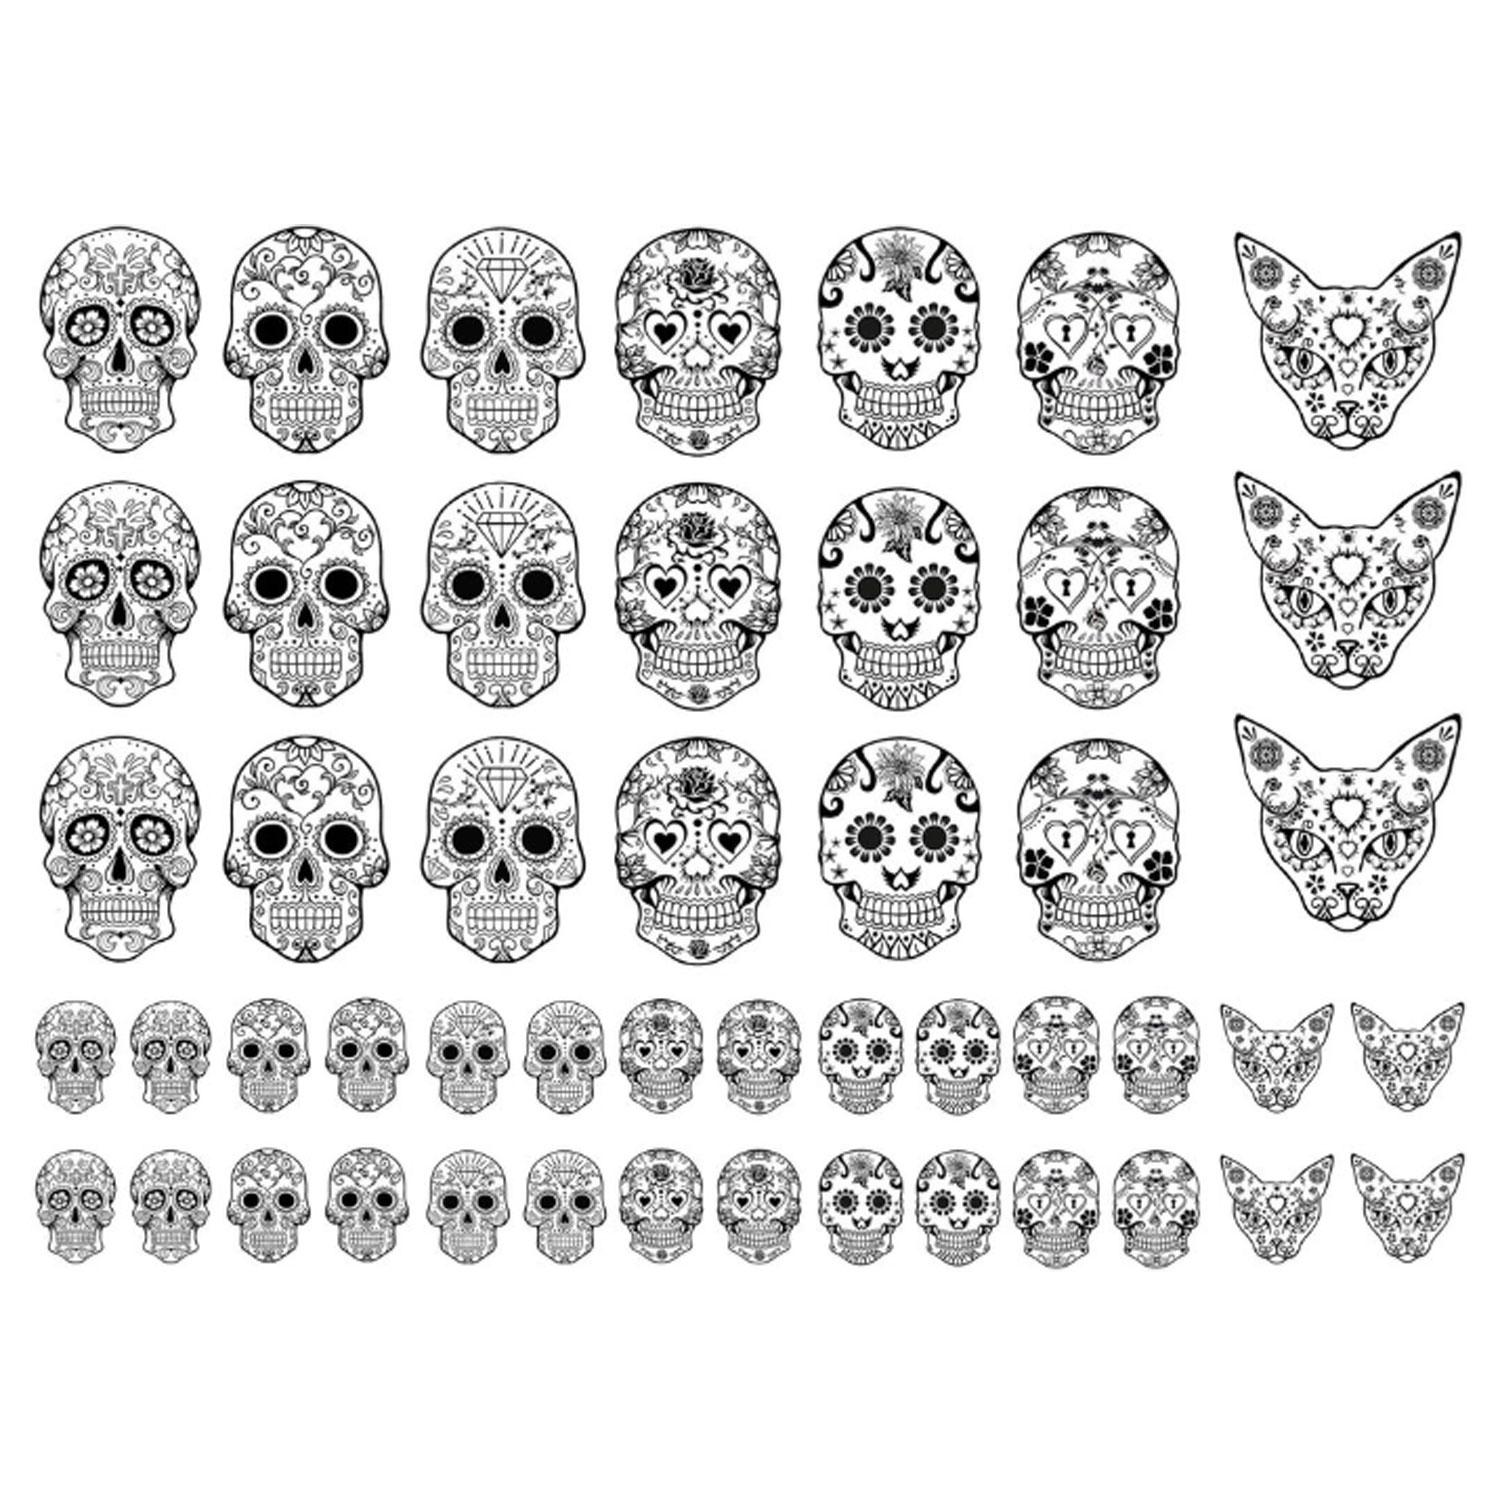 Sugar Skulls Black Enamel Decals